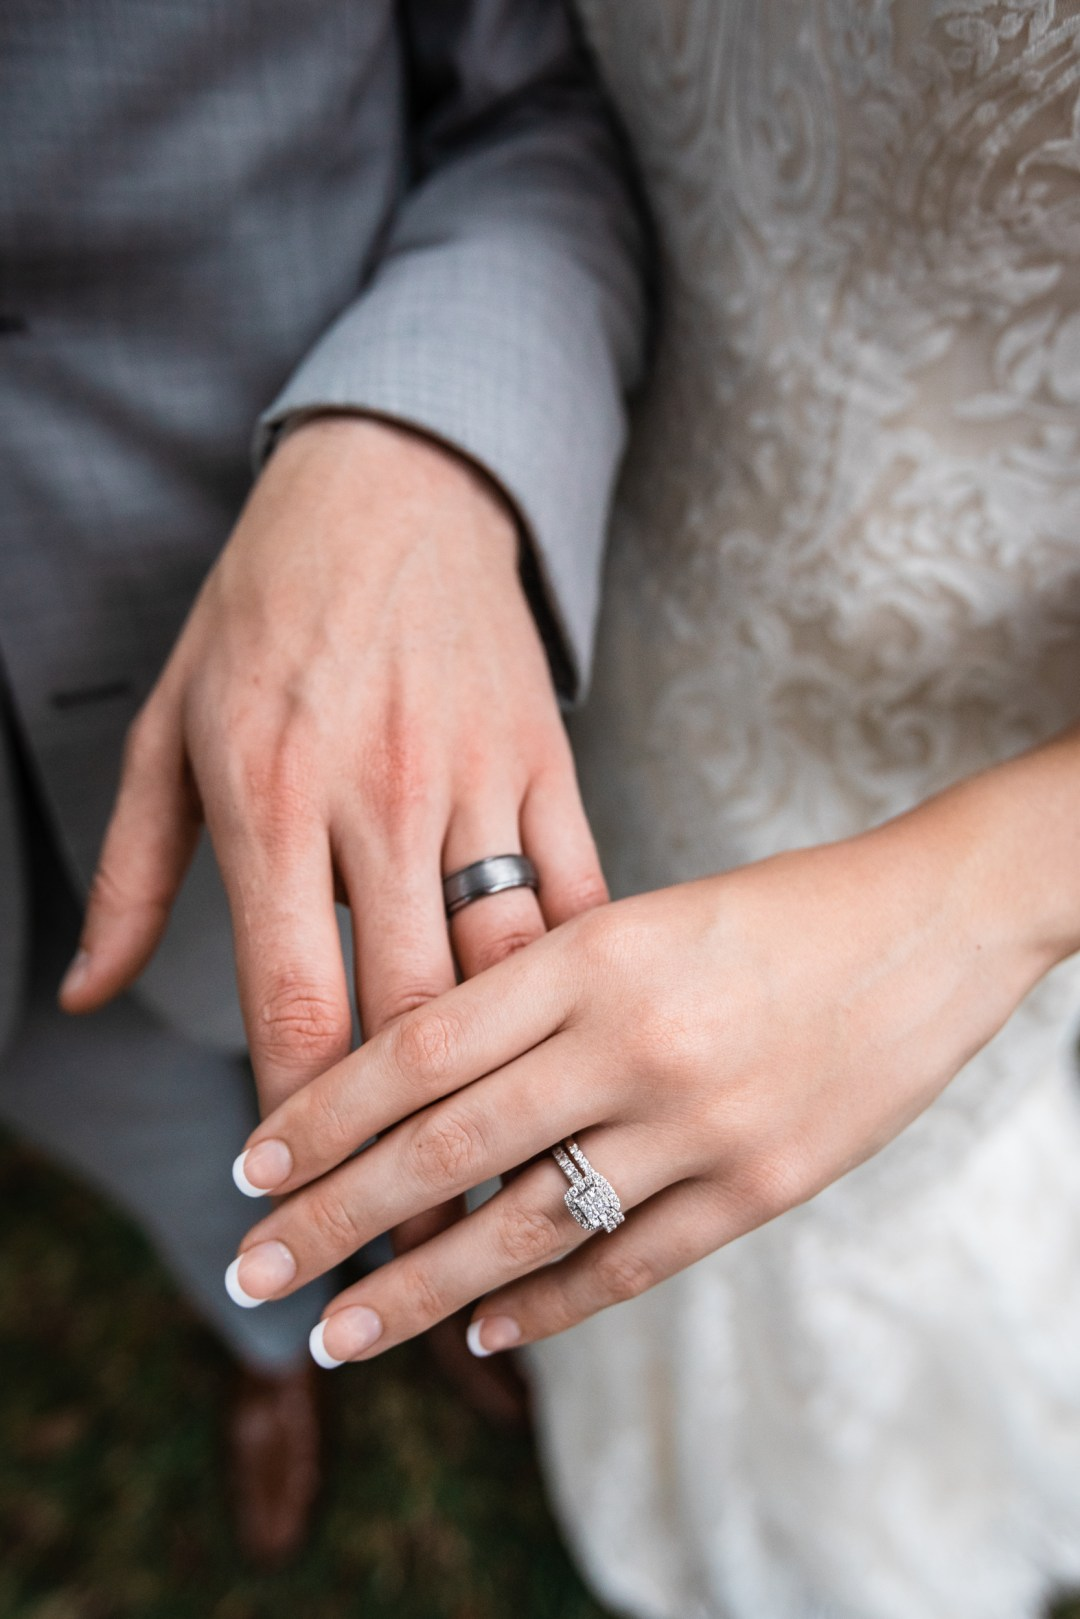 photo of bride and groom hands wearing wedding rings